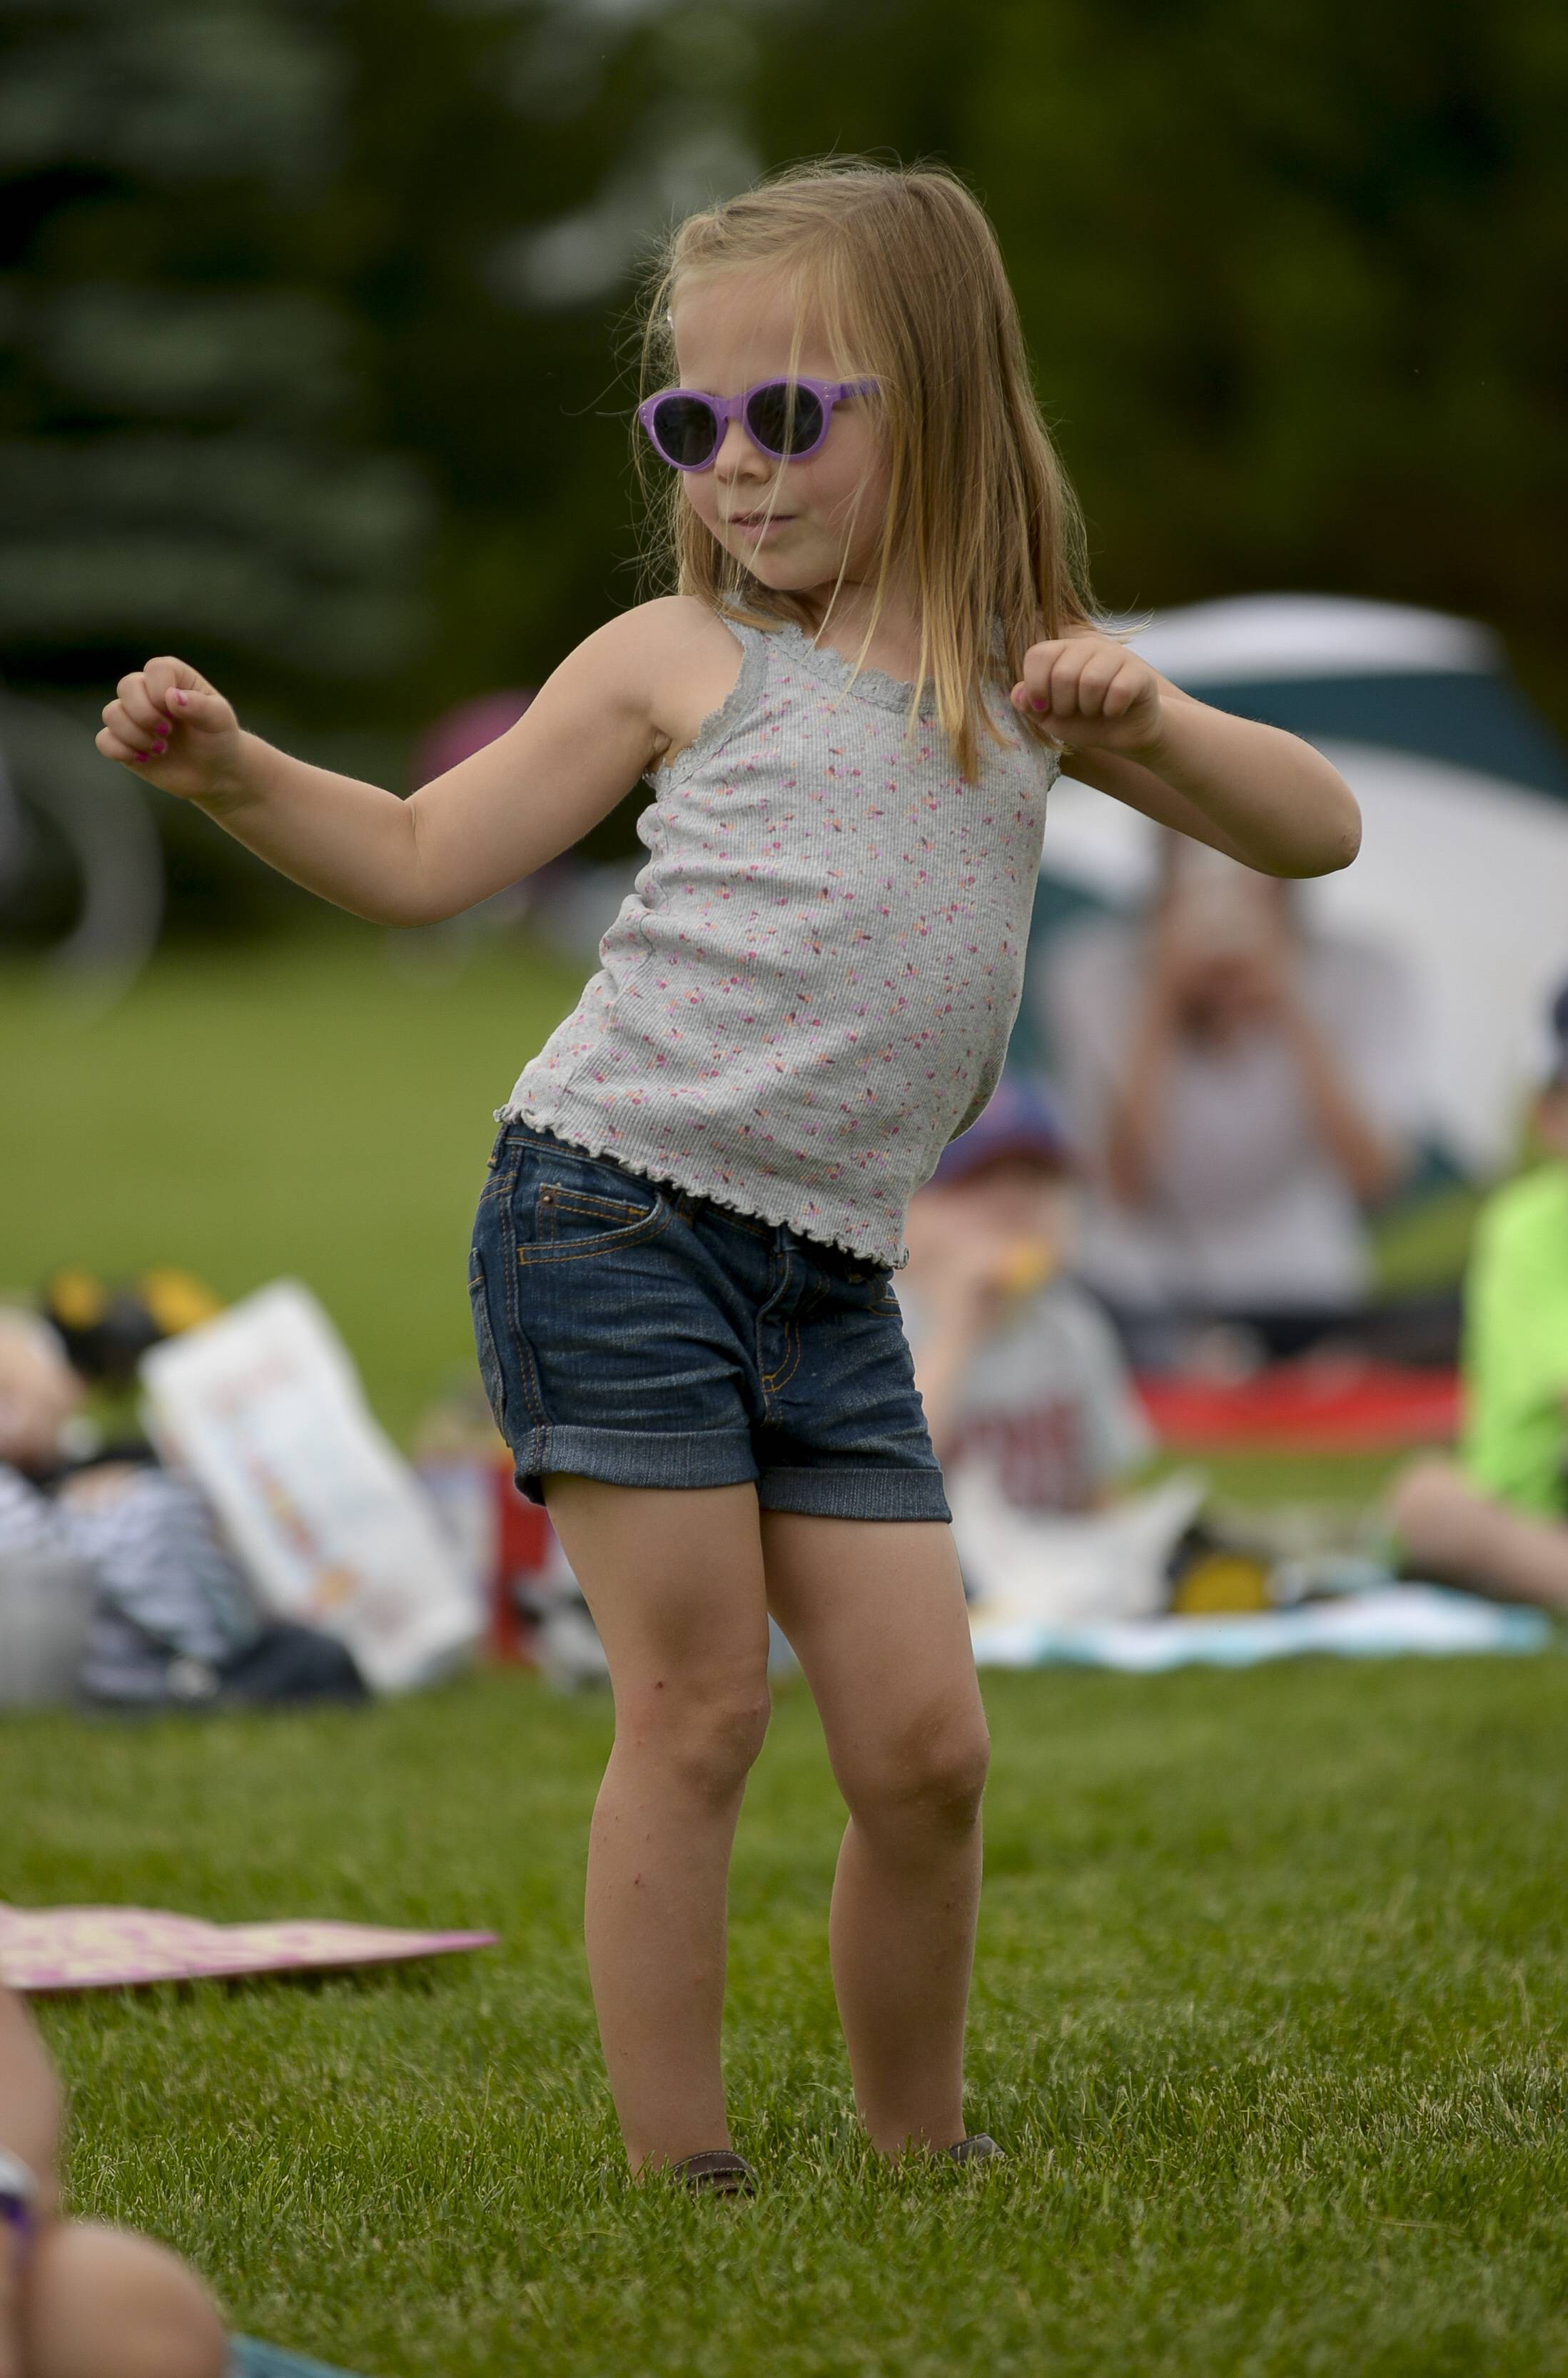 Gianna Brown, 4, of Naperville, dances to the music of the Ice Cream Vendors as they perform Tuesday as part of Naperville Park District's Children's Lunch Hour Entertainment series at Frontier Park.